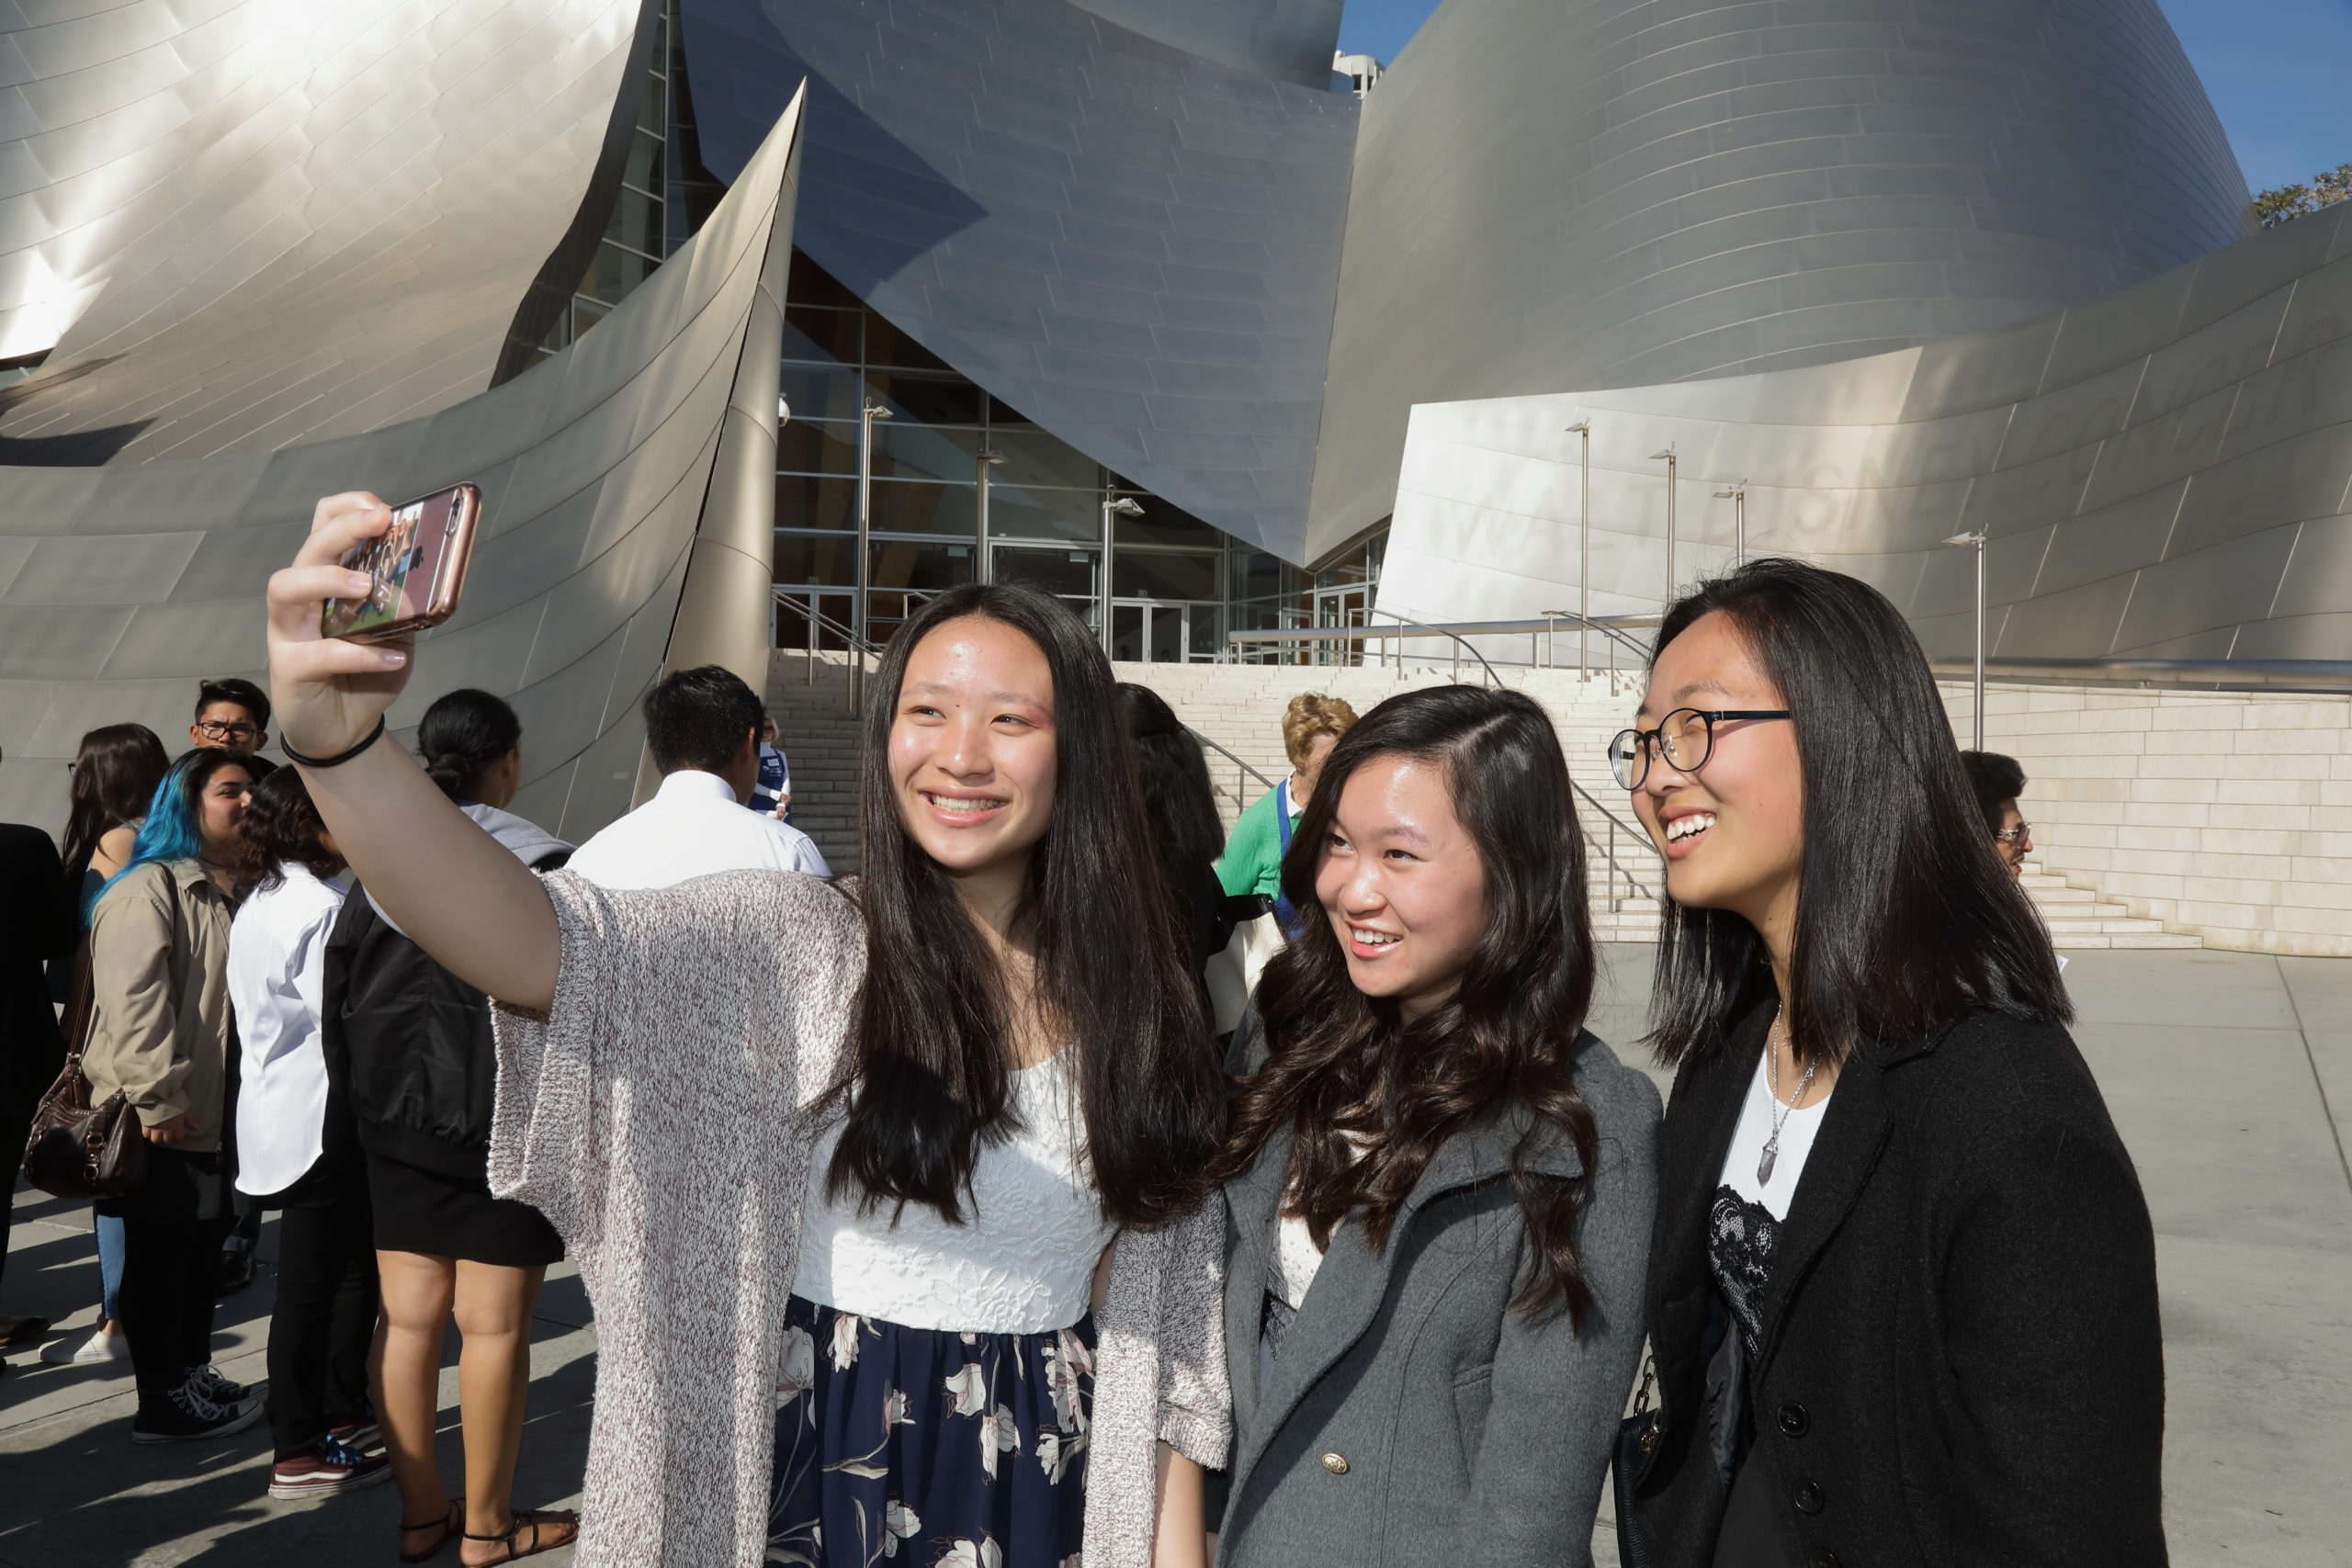 Students taking selfies in front of Disney Hall